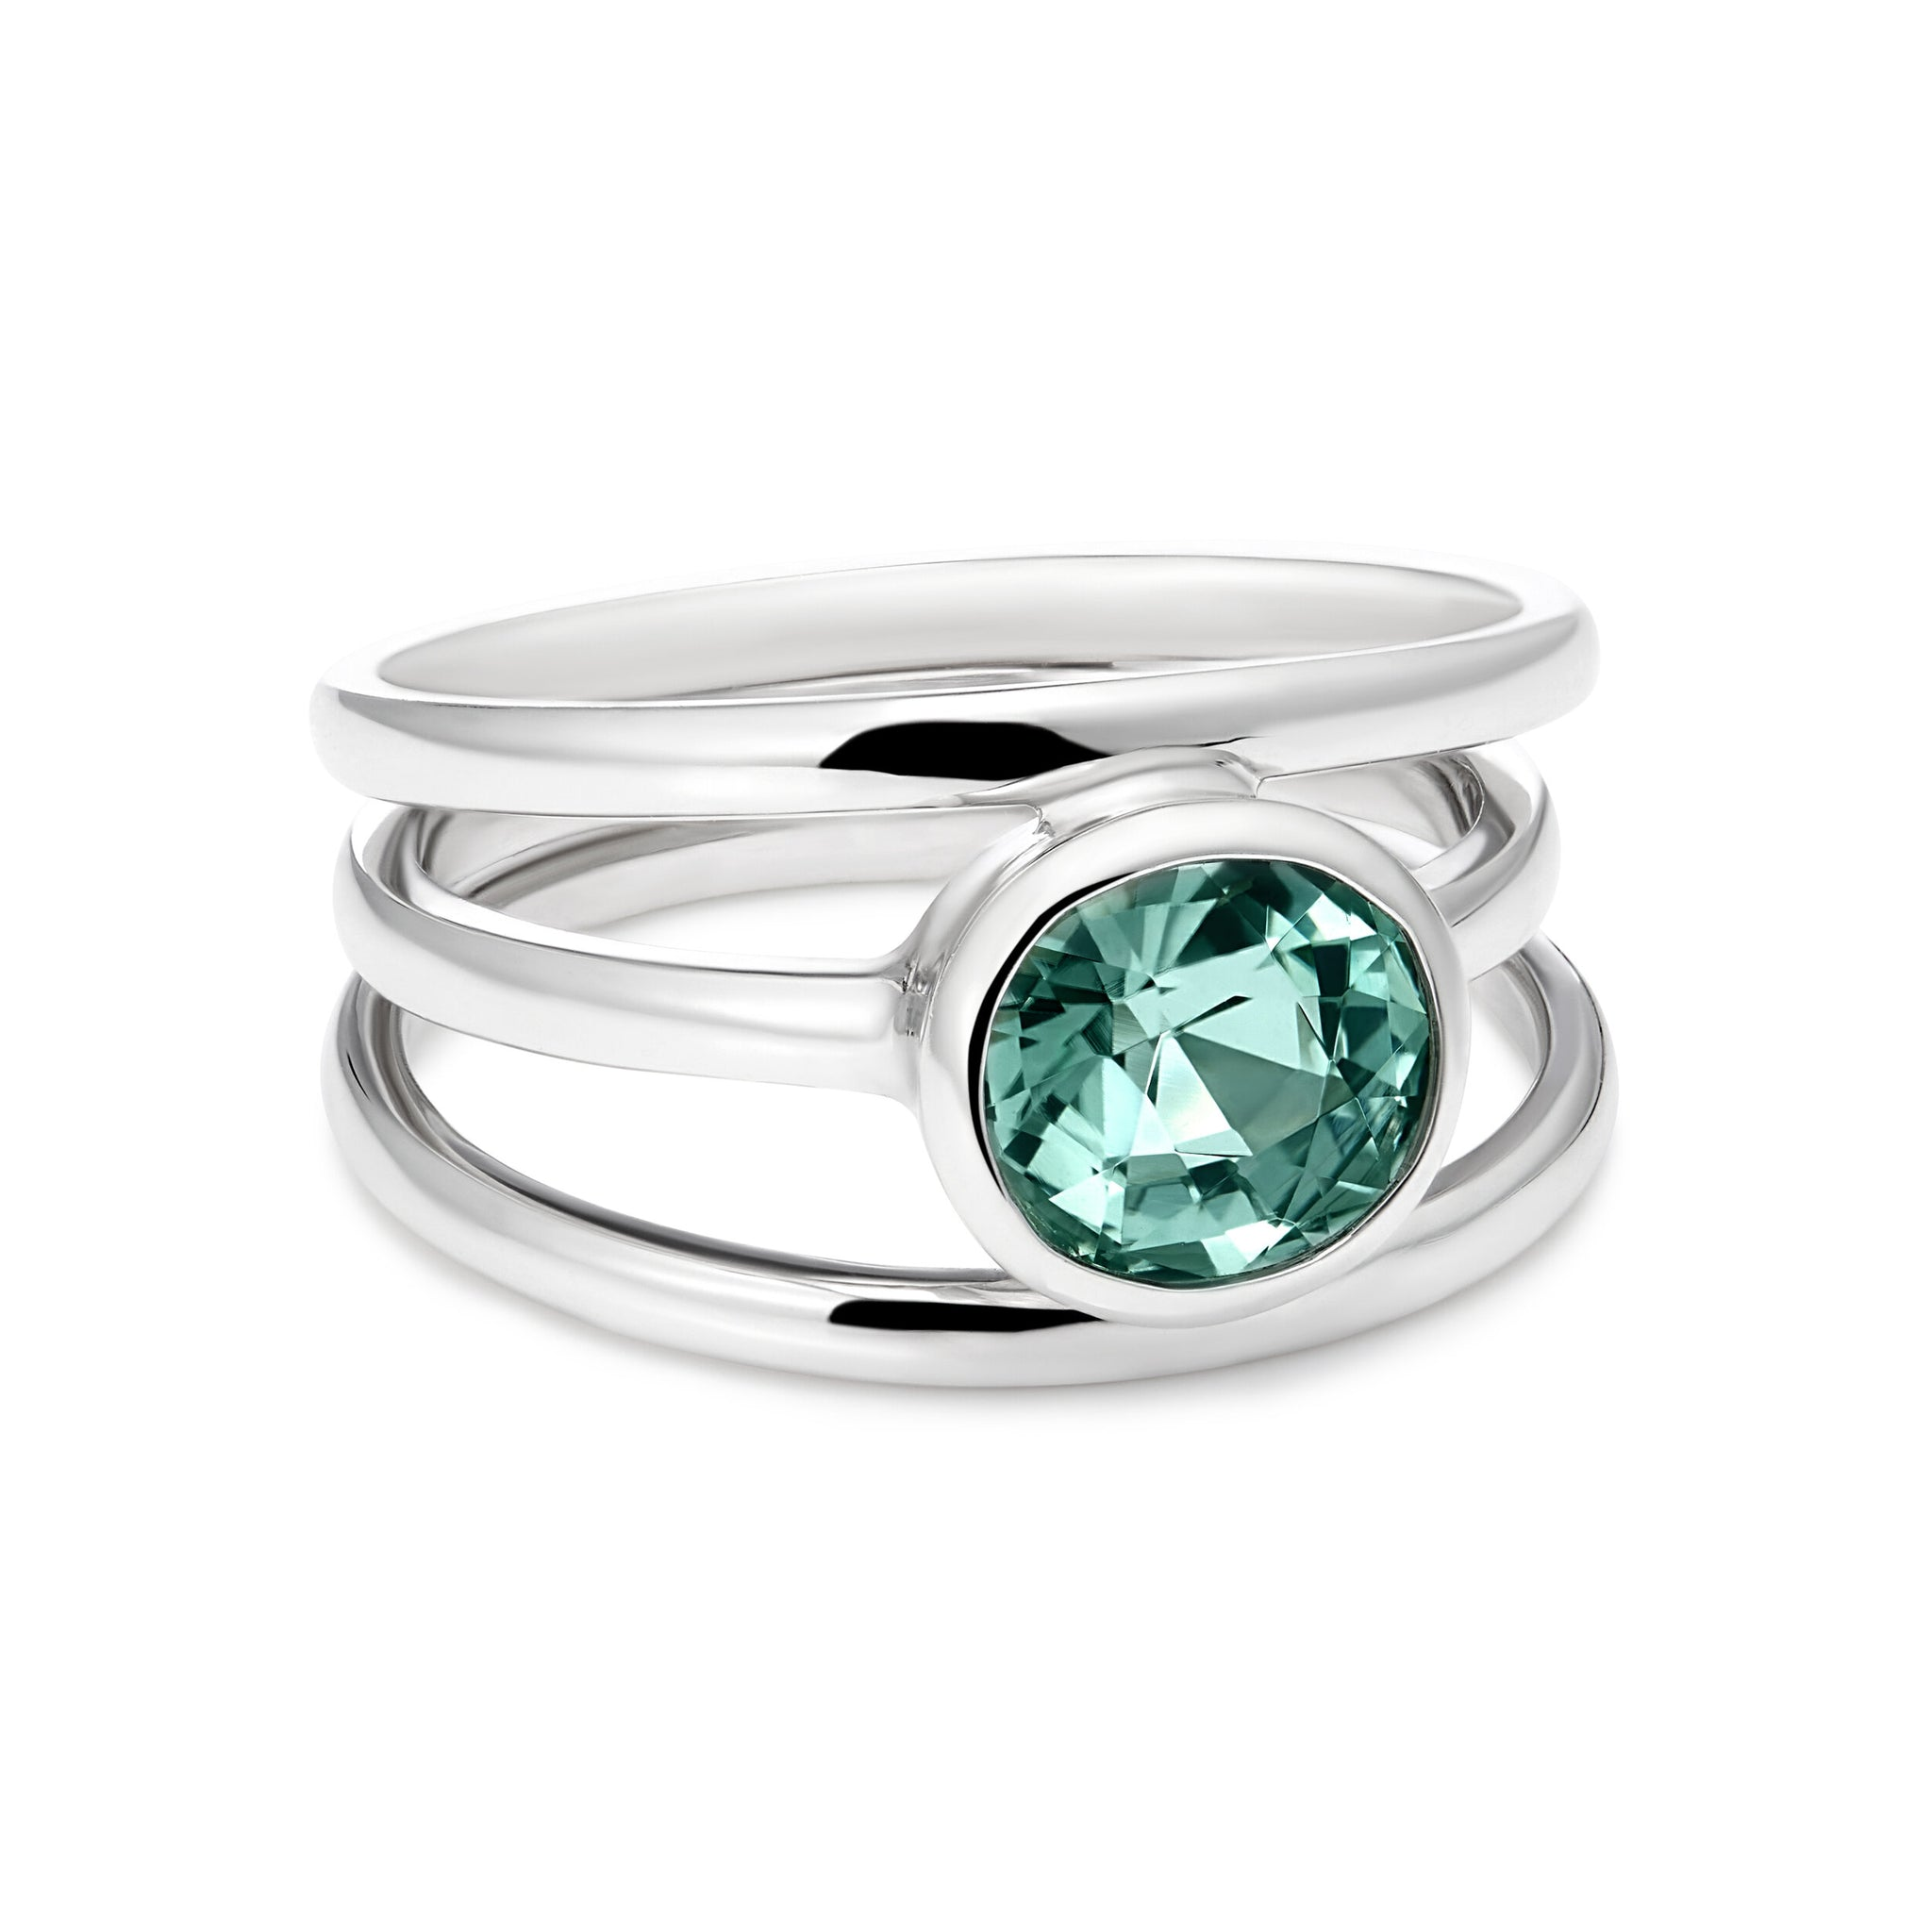 3 Way: Mint Tourmaline Ring Set In 9kt White Gold